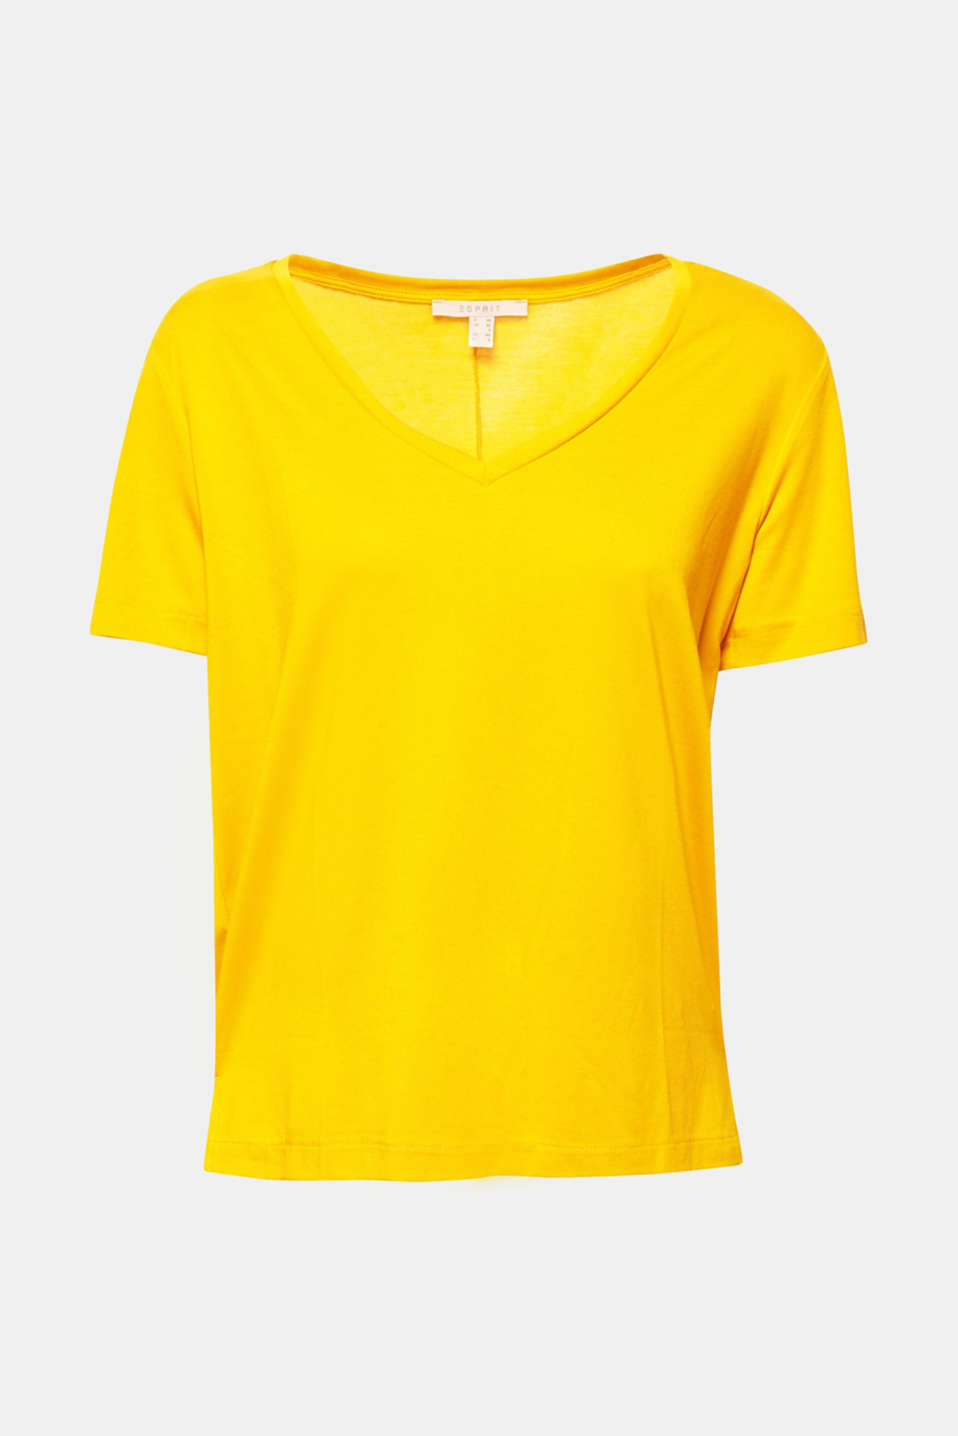 The relaxed V-neck design and silky jersey fabric make this T-shirt the perfect 24/7 basic.